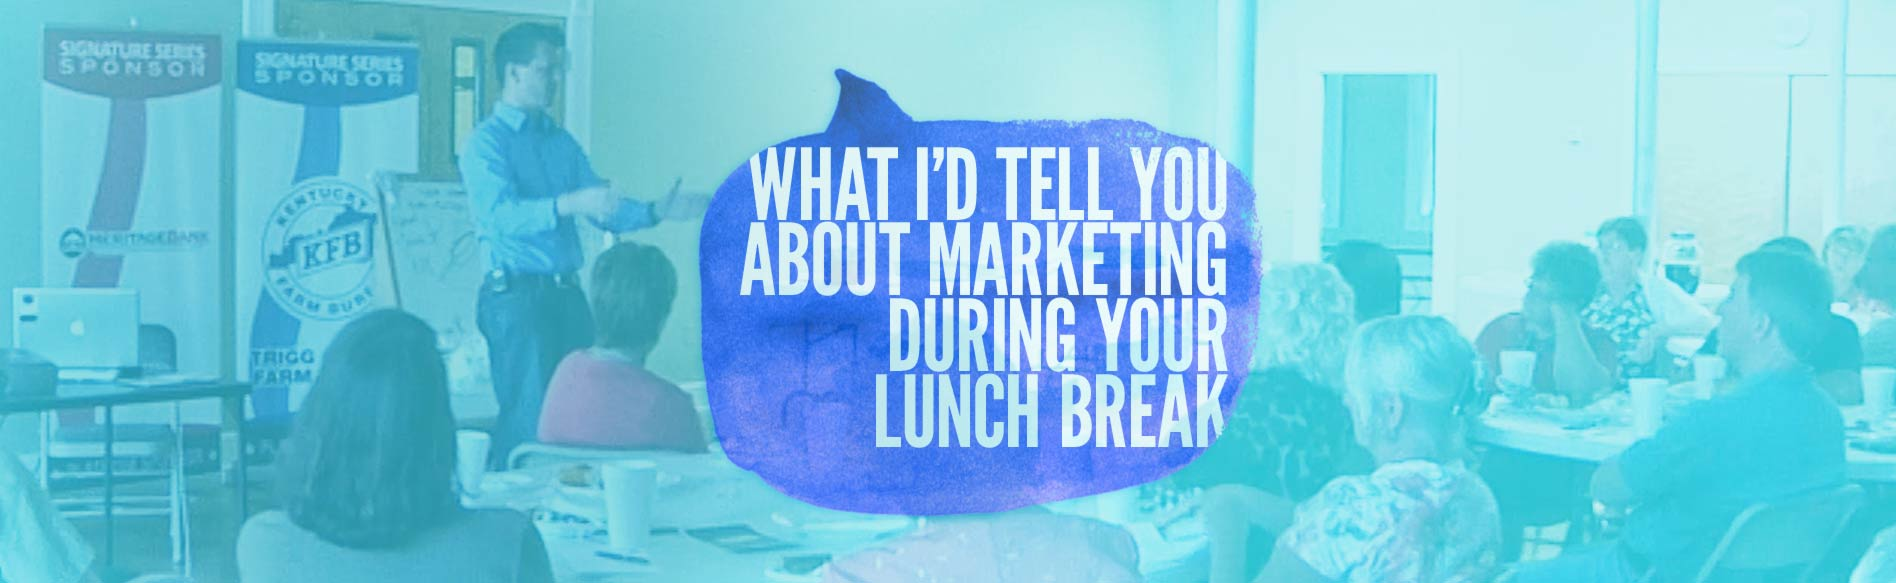 The Biggest Deals About Online Marketing I'd Share On Your 23 Minute Lunch Break